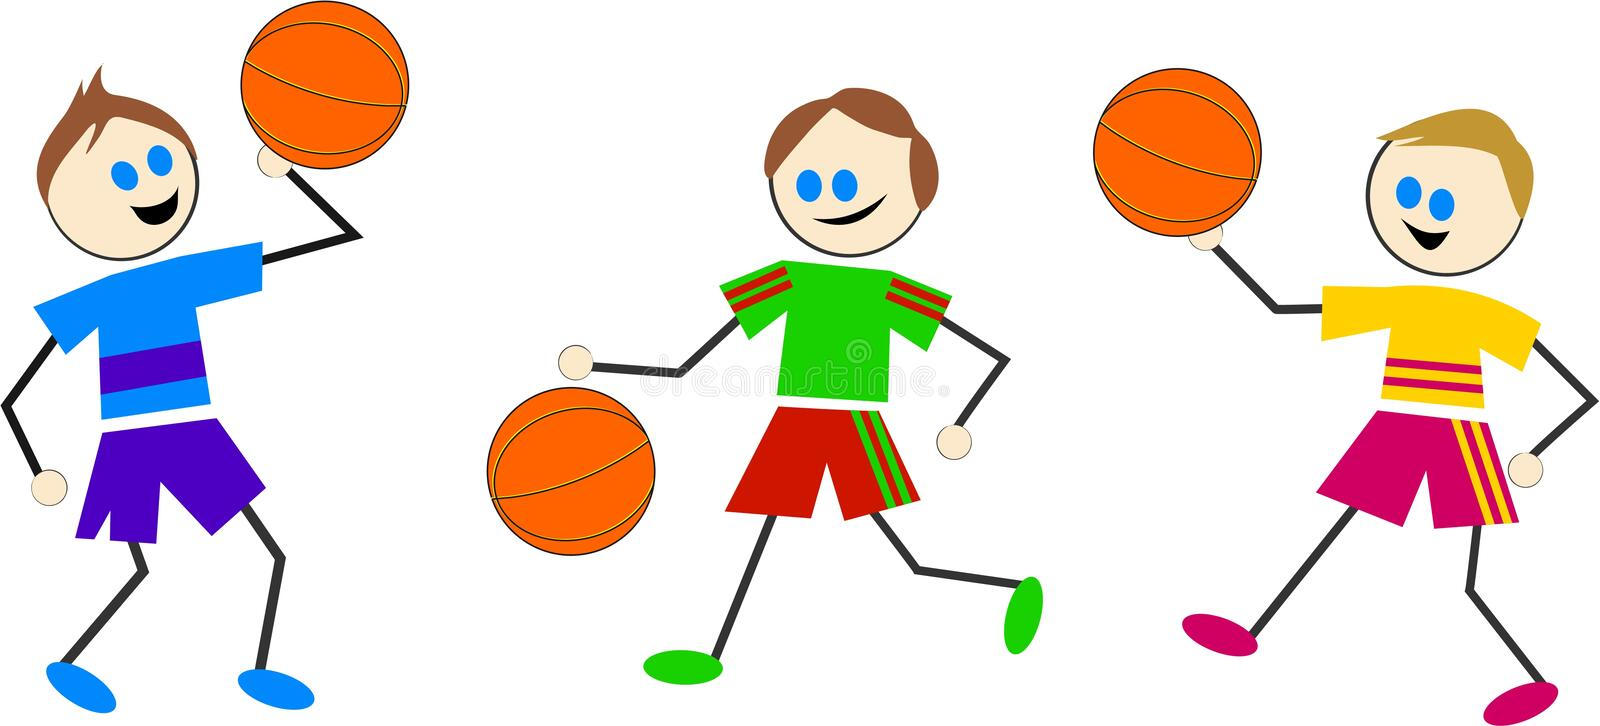 Basketballkinder stock abbildung